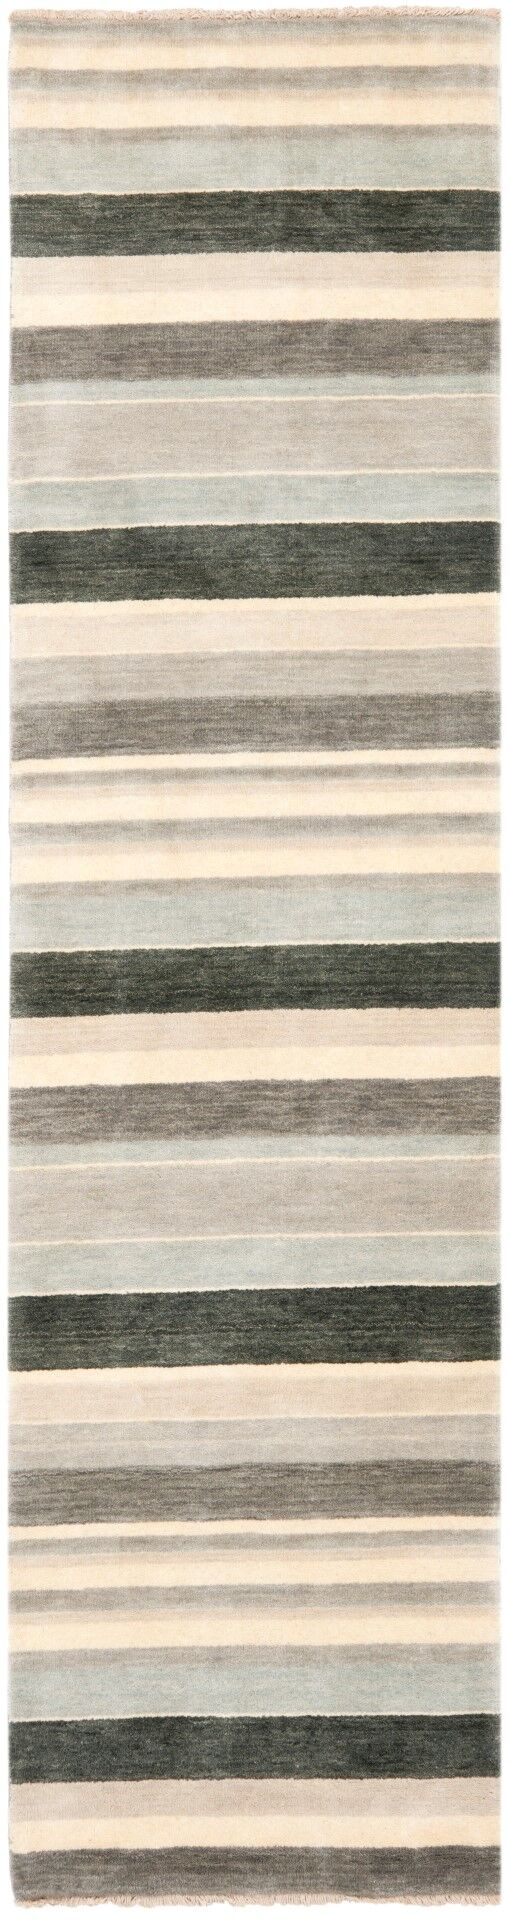 Brookvale Hand-Knotted Gray Area Rug Rug Size: Runner 2' x 8'